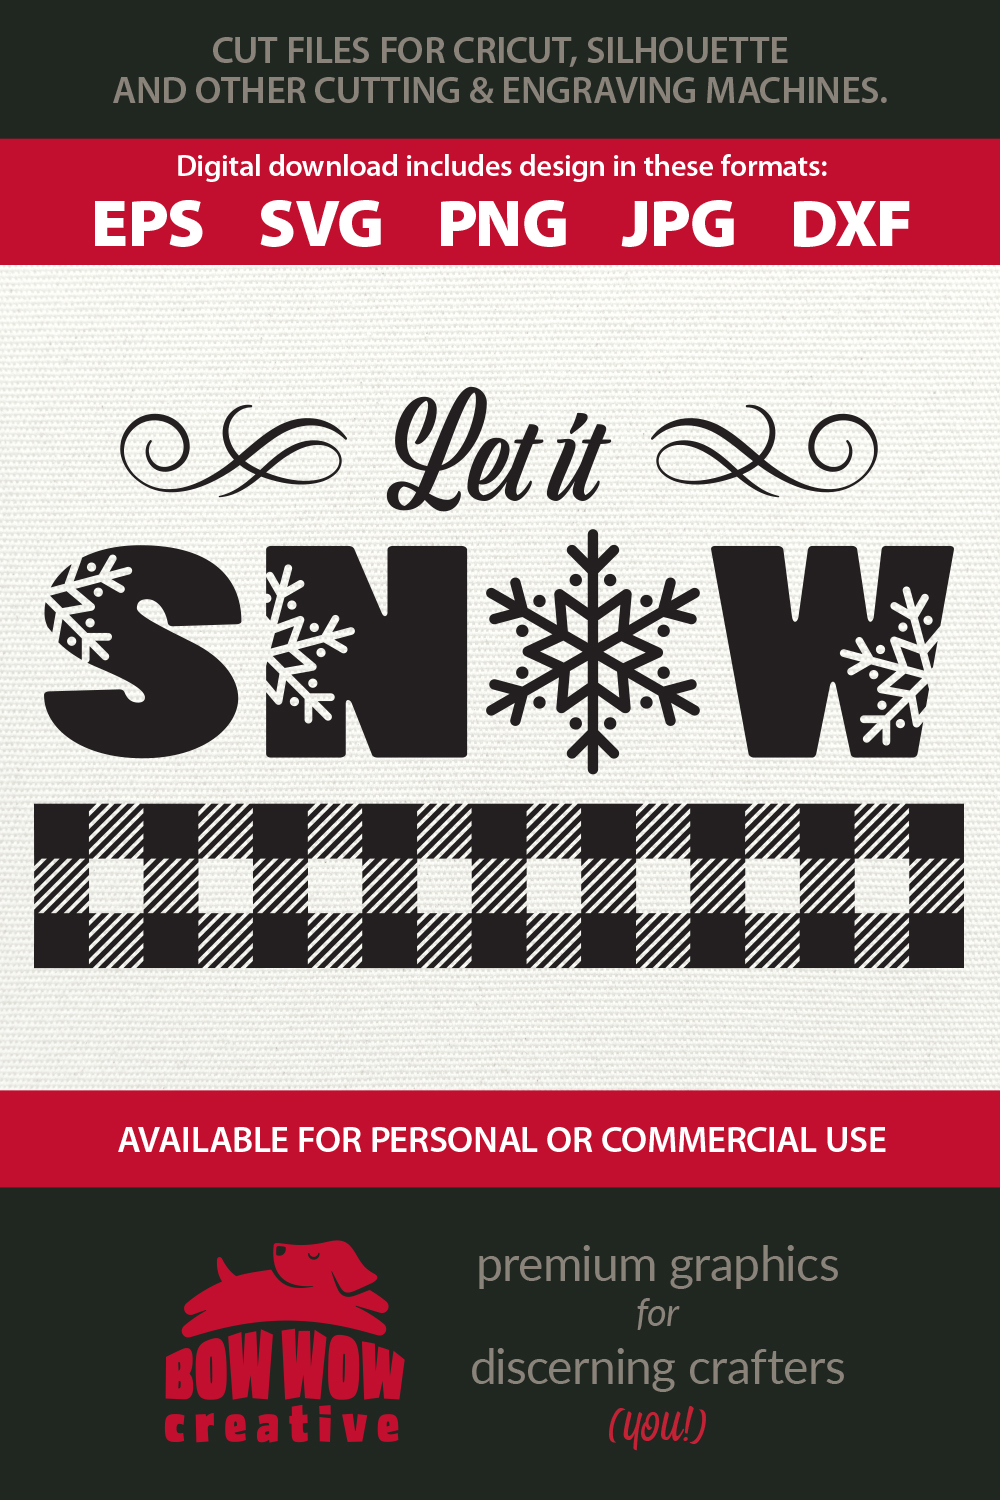 Let it Snow - SVG, EPS, JPG, PNG, DXF example image 2